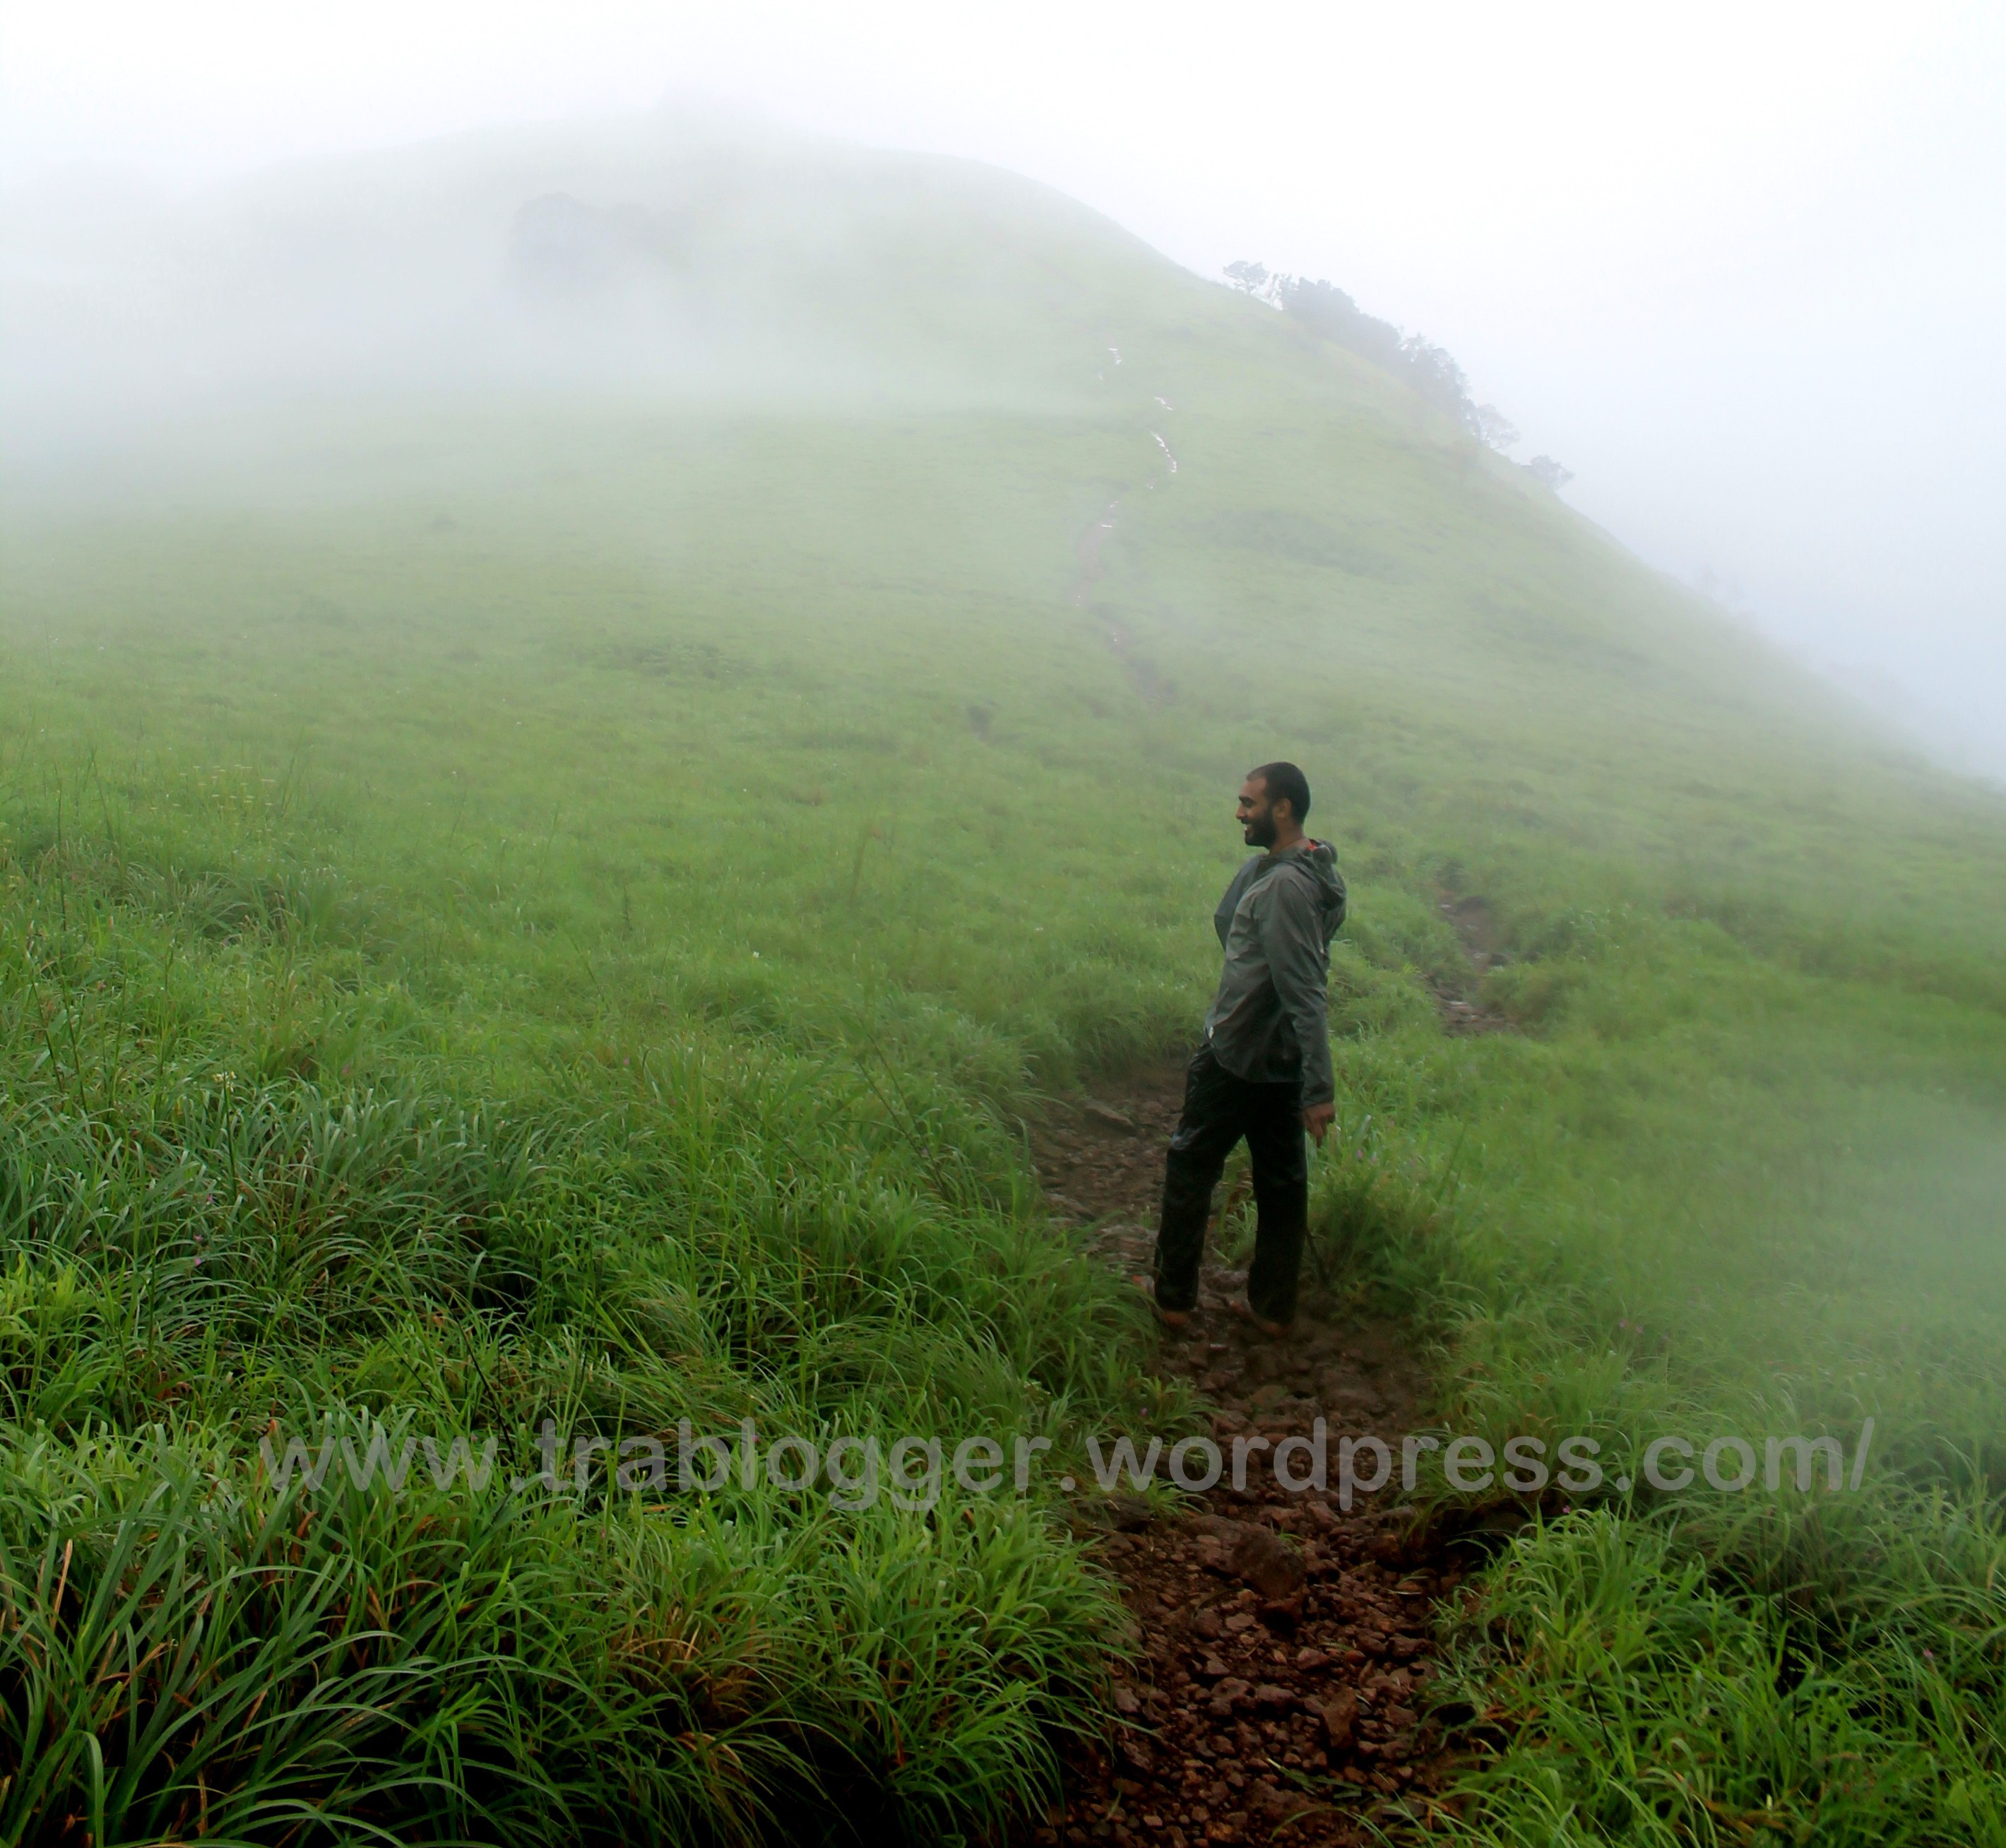 Almost there!! Near Vaithalmala peak